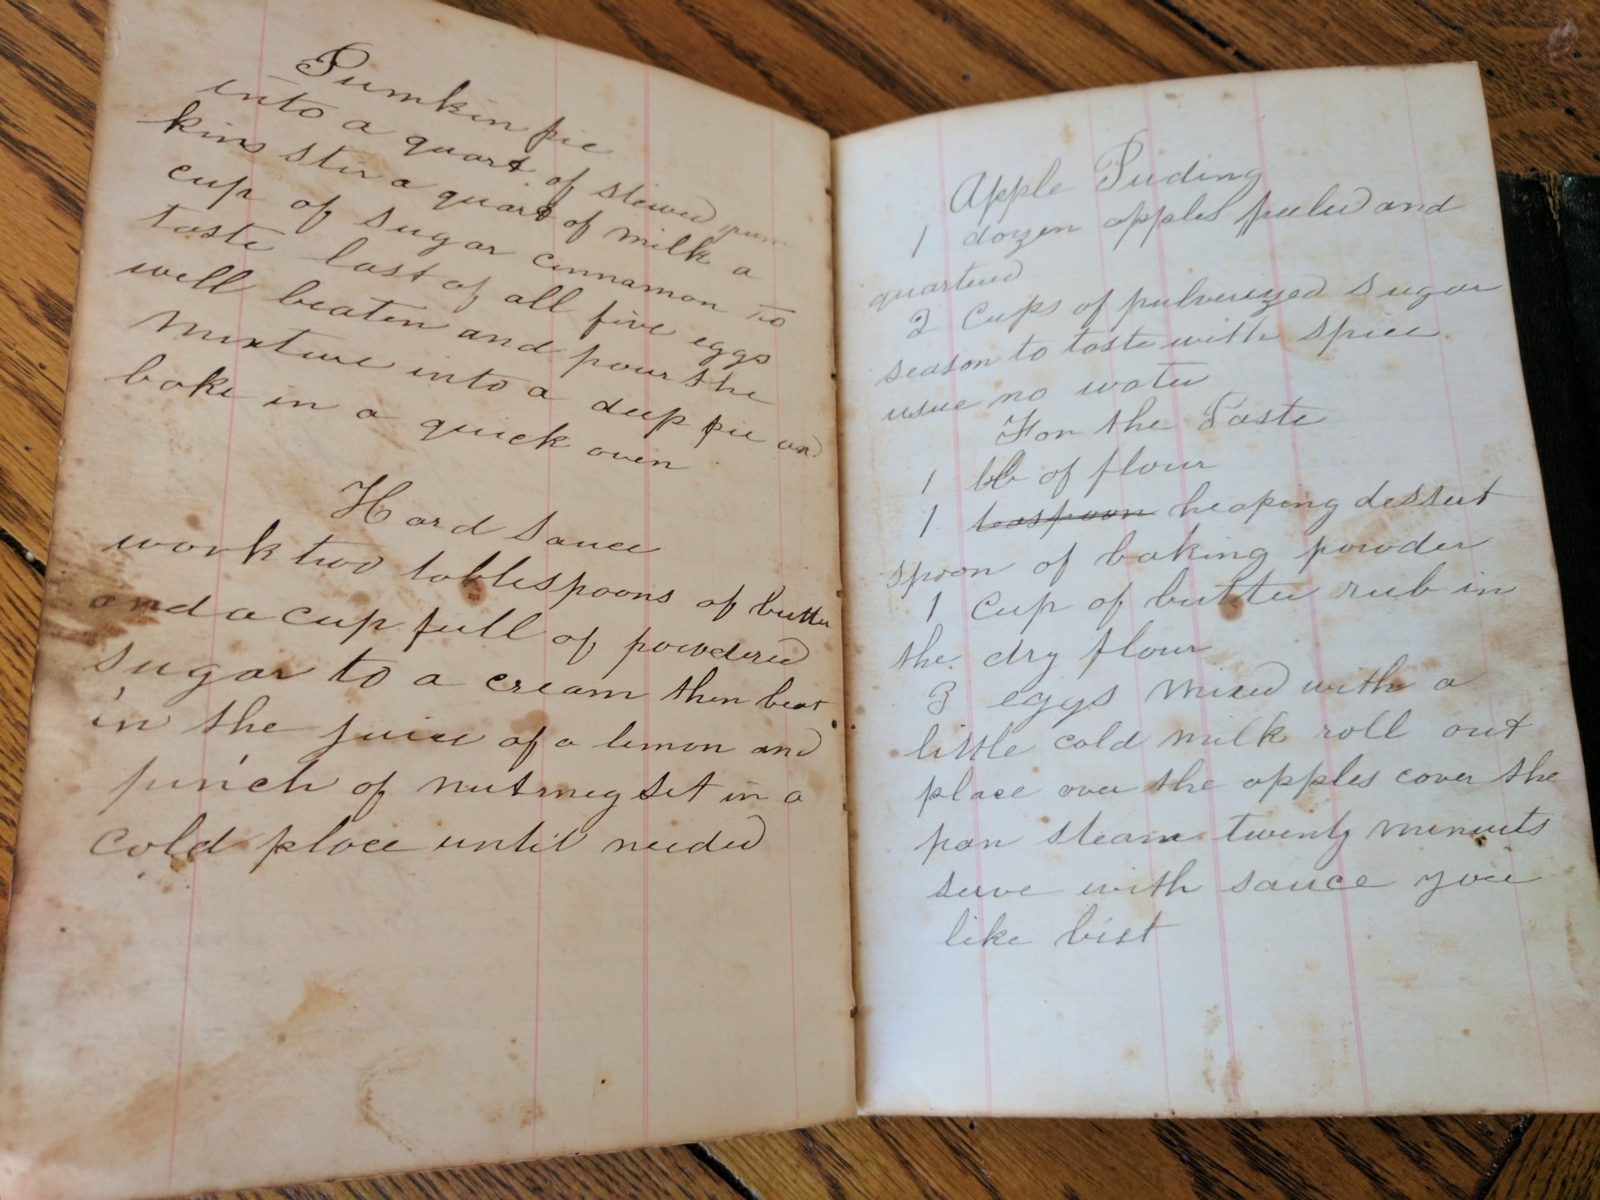 Reynolds Ledger, recipes